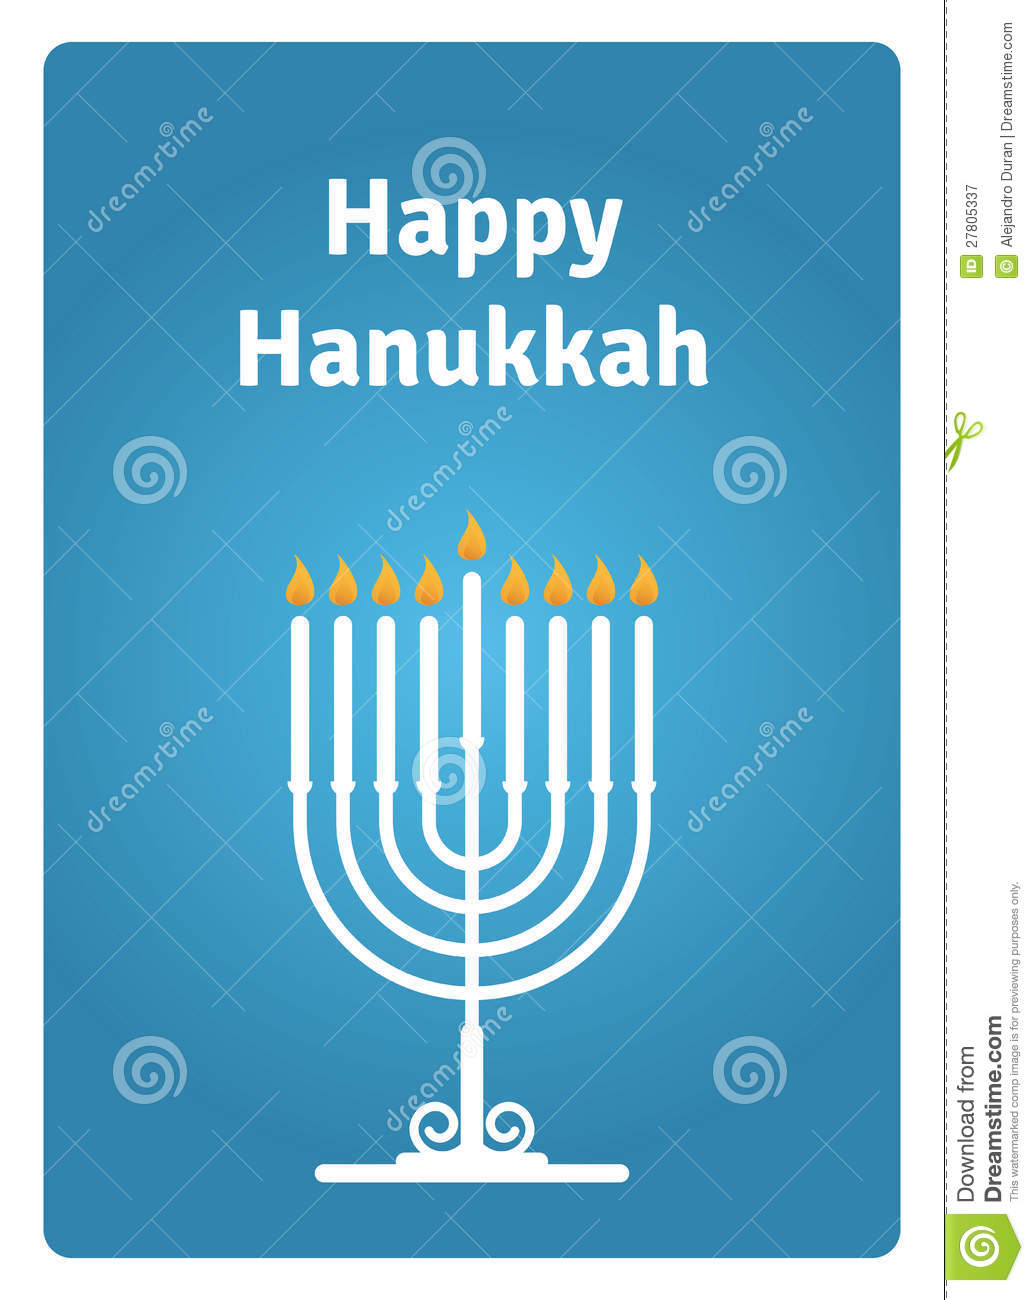 Hanukkah Card Candle Royalty Free Stock Photography - Image: 27805337